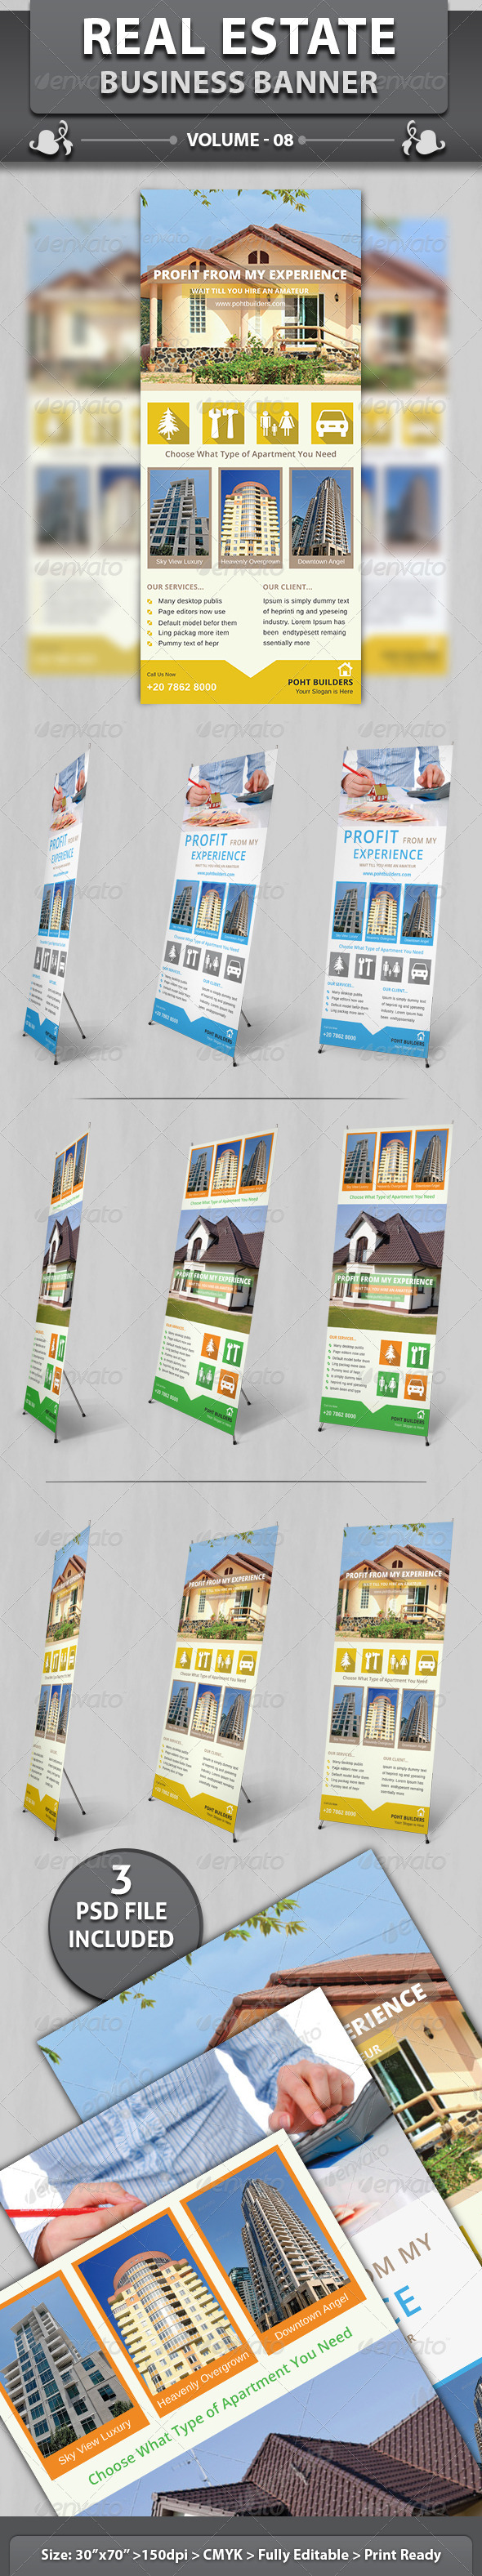 Real Estate Business Banner | Volume 8 - Signage Print Templates